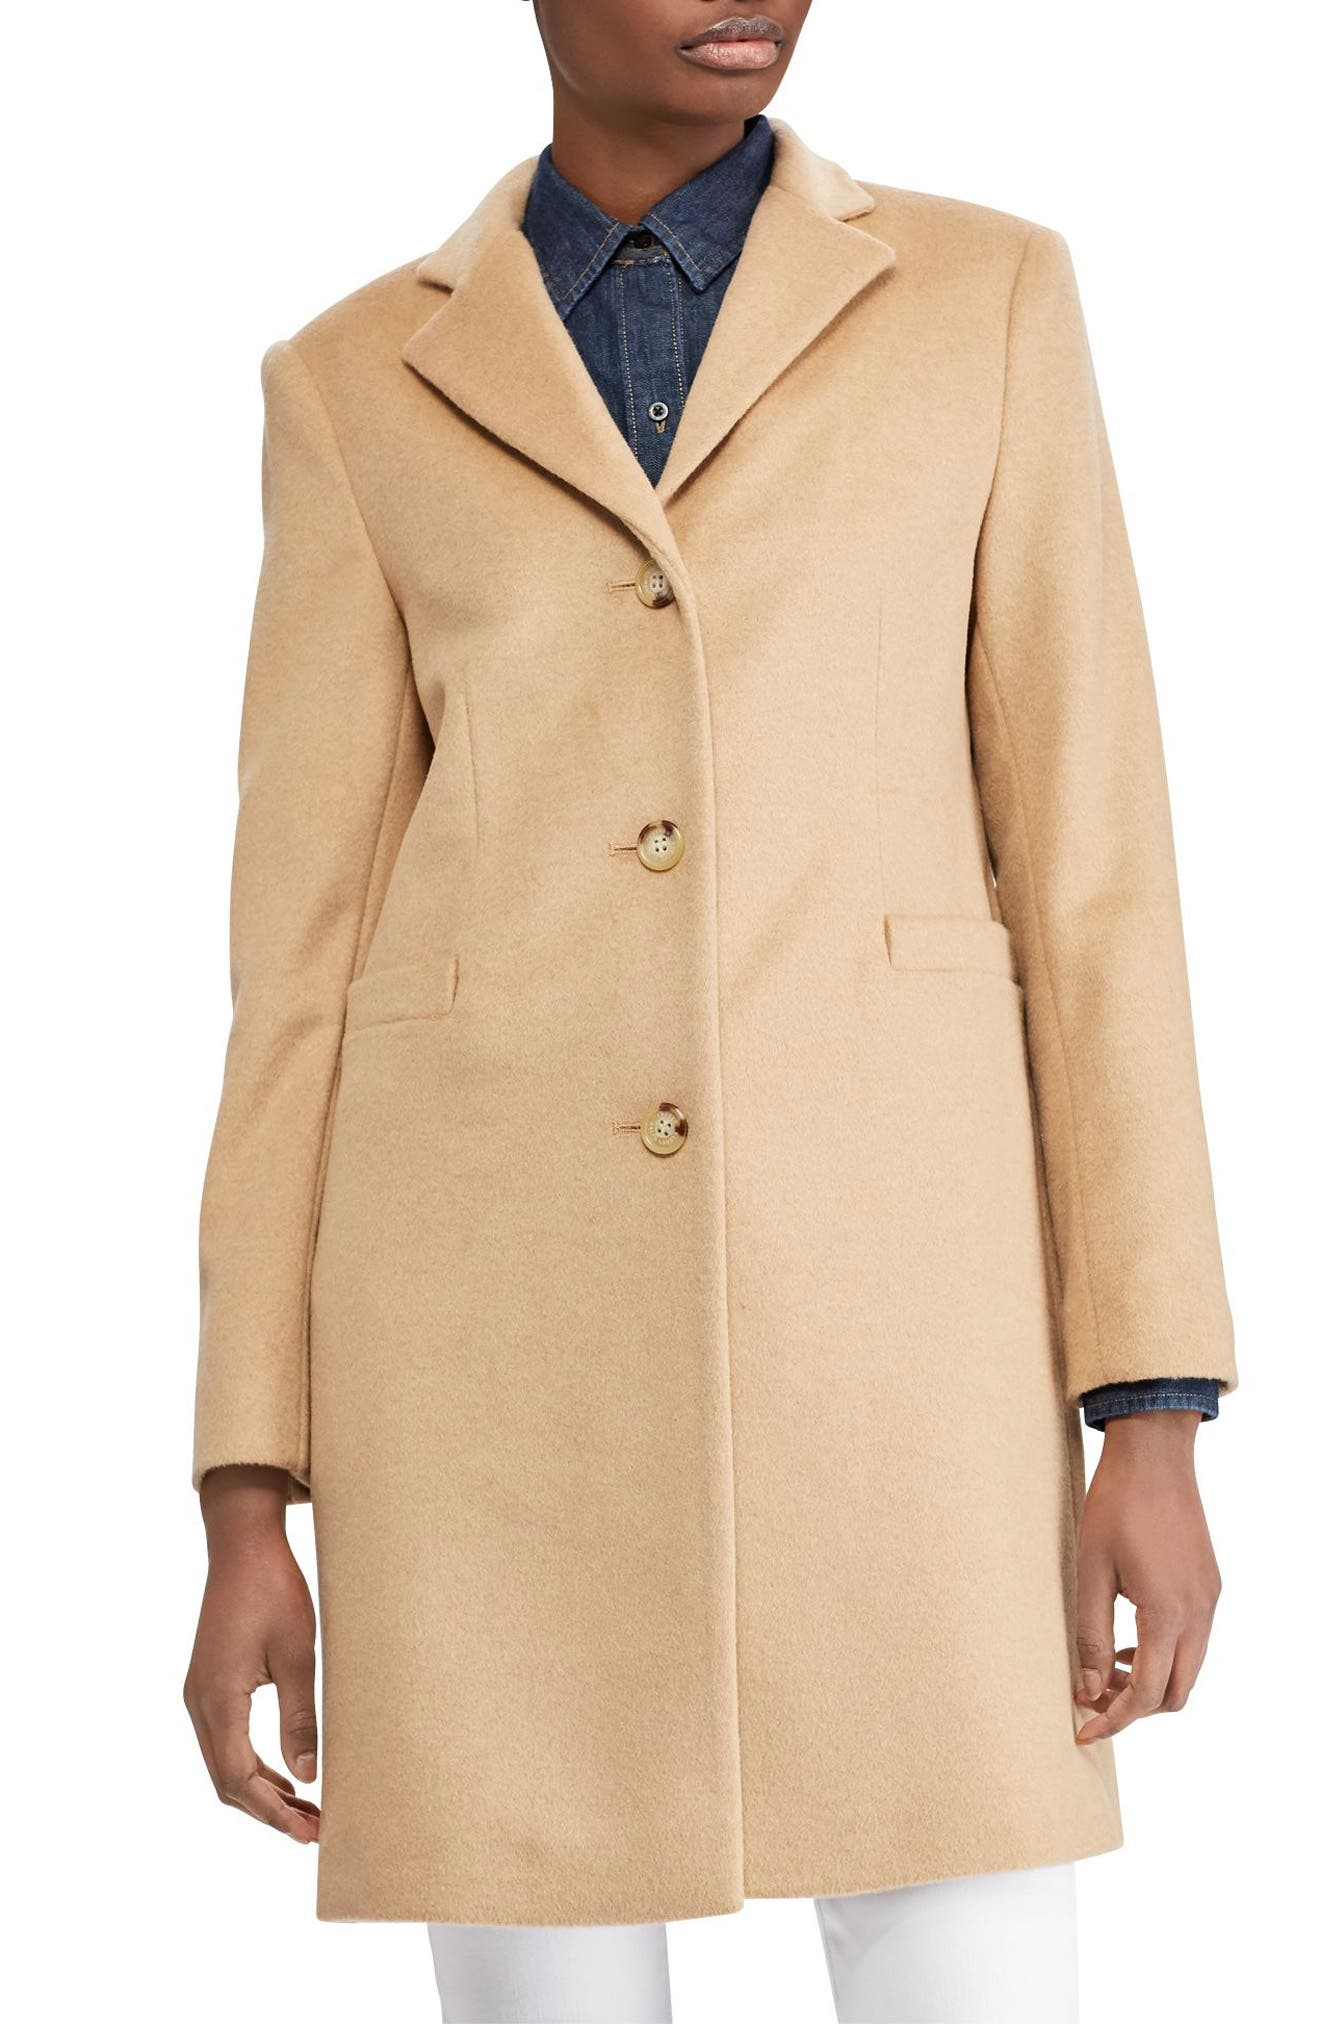 Lauren Ralph Lauren Wool Blend Reefer Coat (Regular \u0026 Petite)